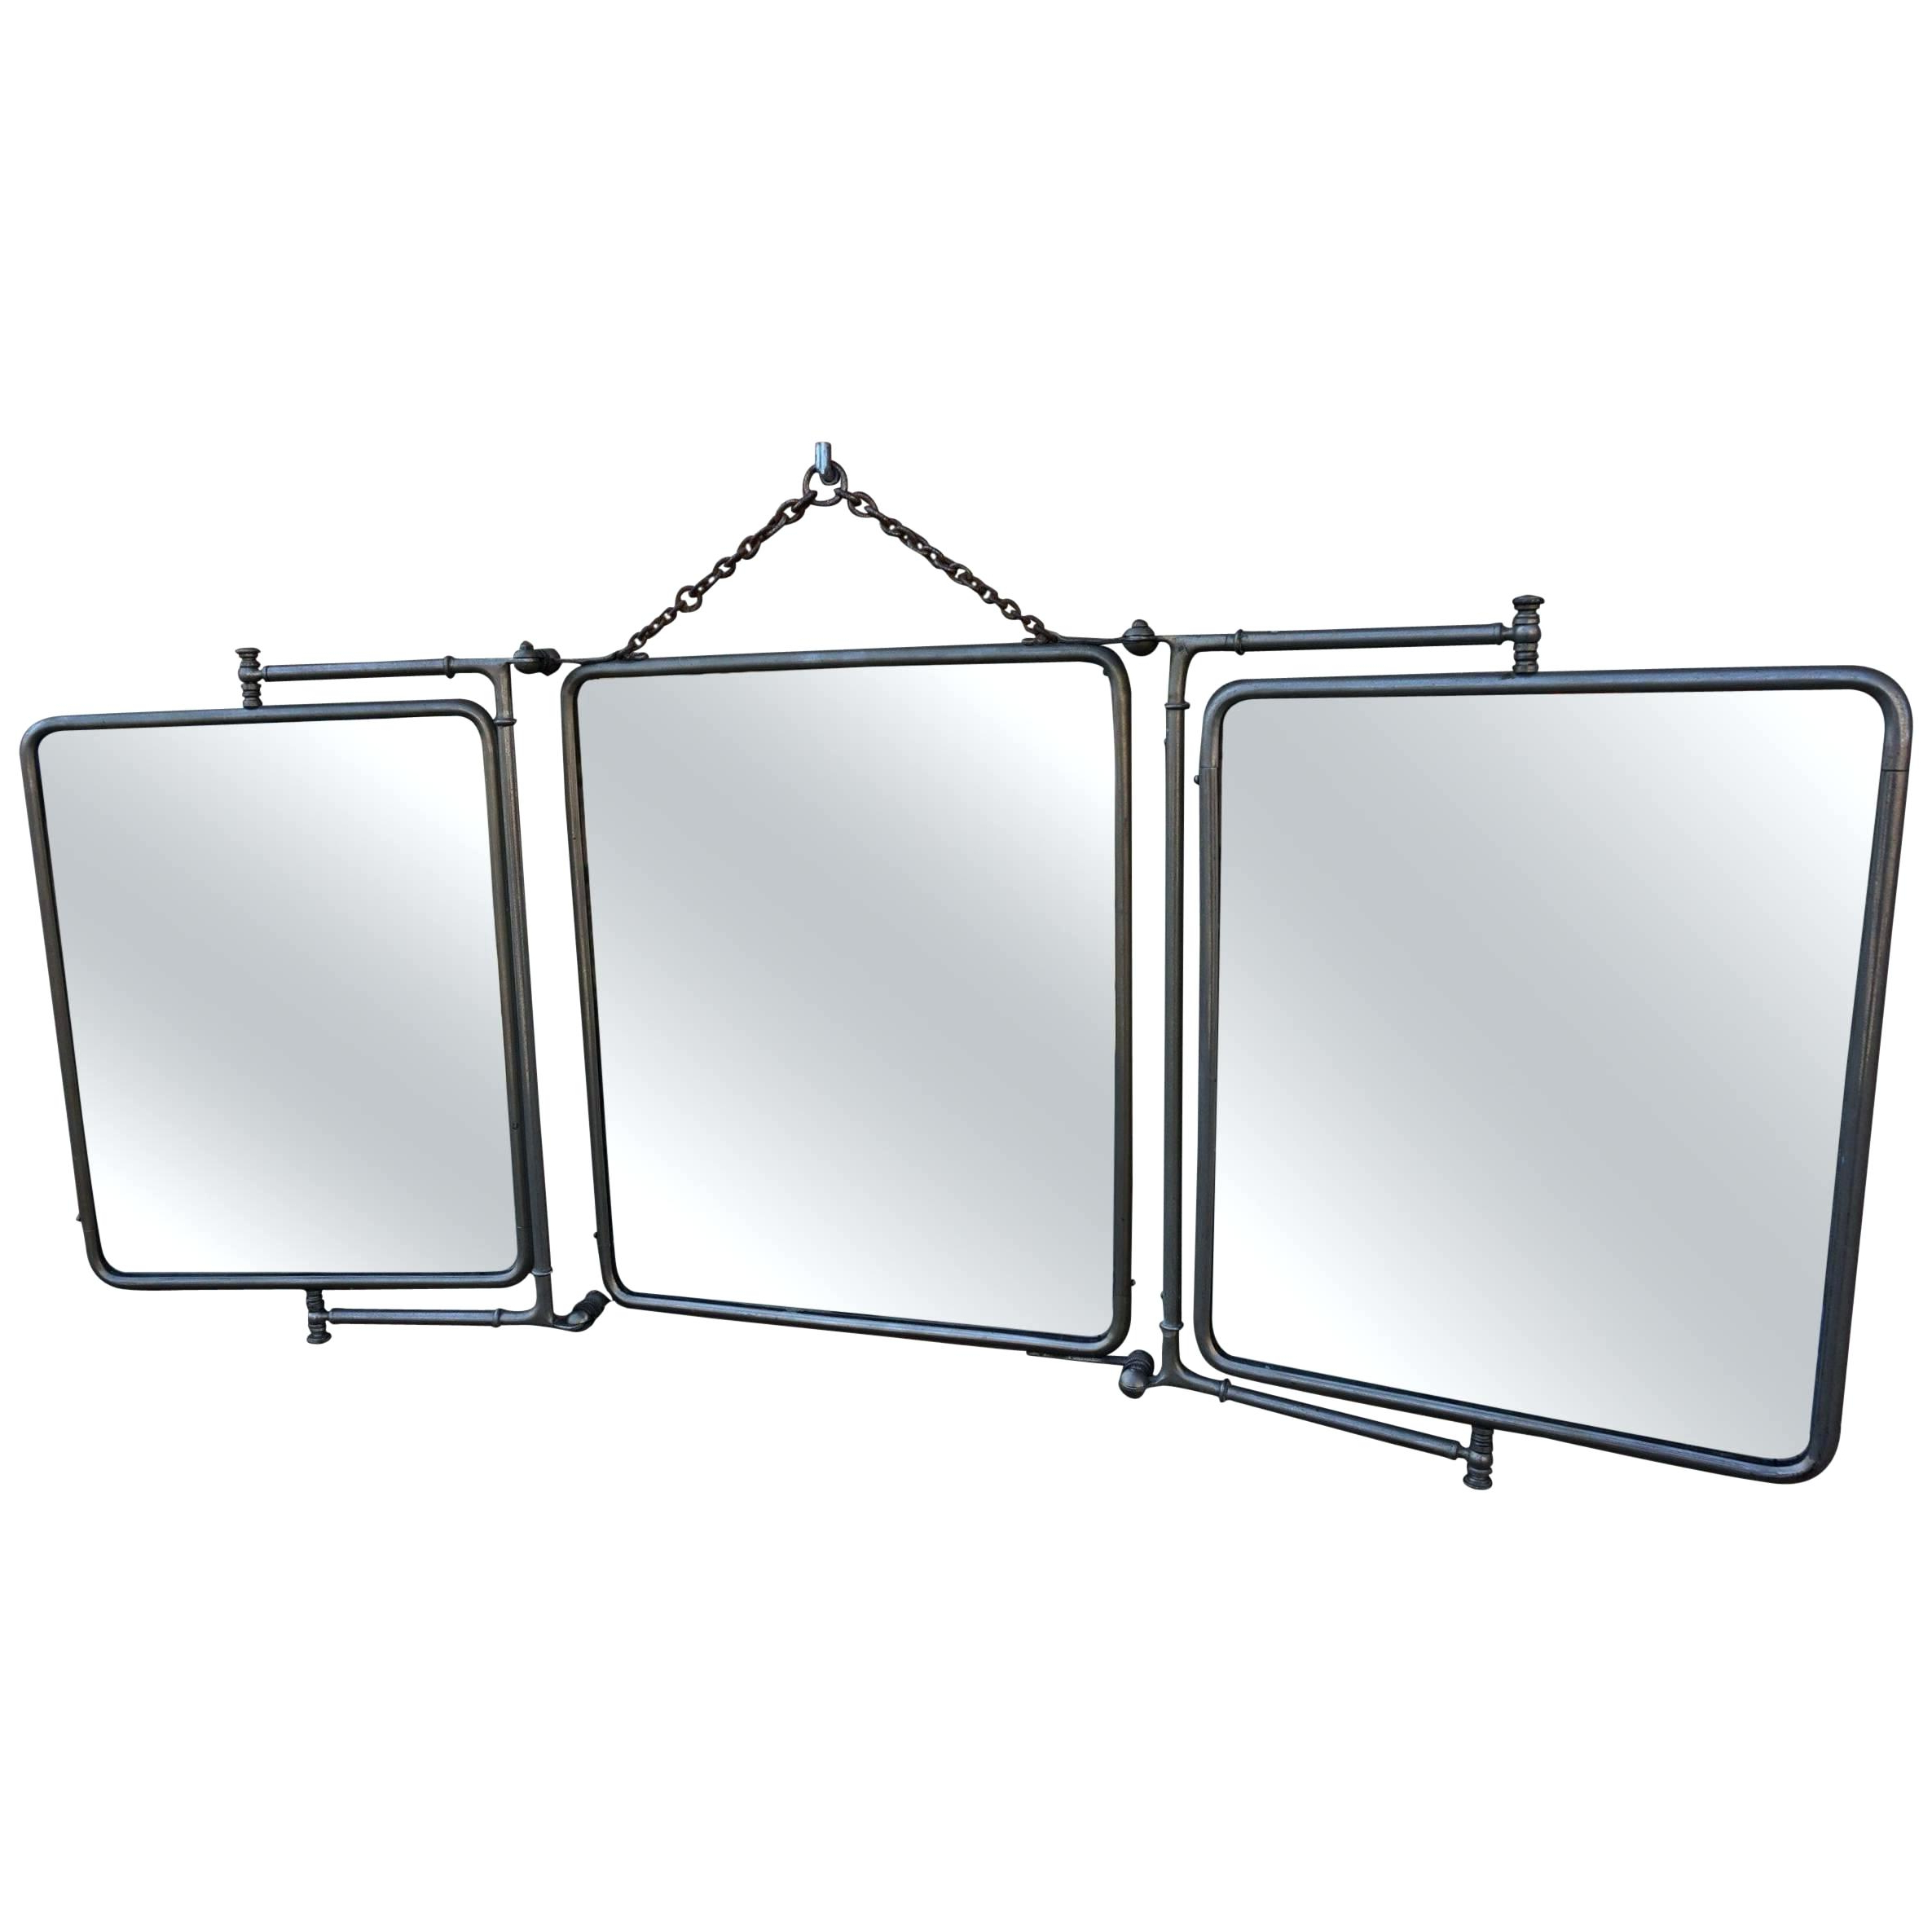 Metal Frame Wall Mirror Rare Industrial Threefold Folding Want More With Regard To 2019 Folding Wall Mirrors (View 10 of 20)